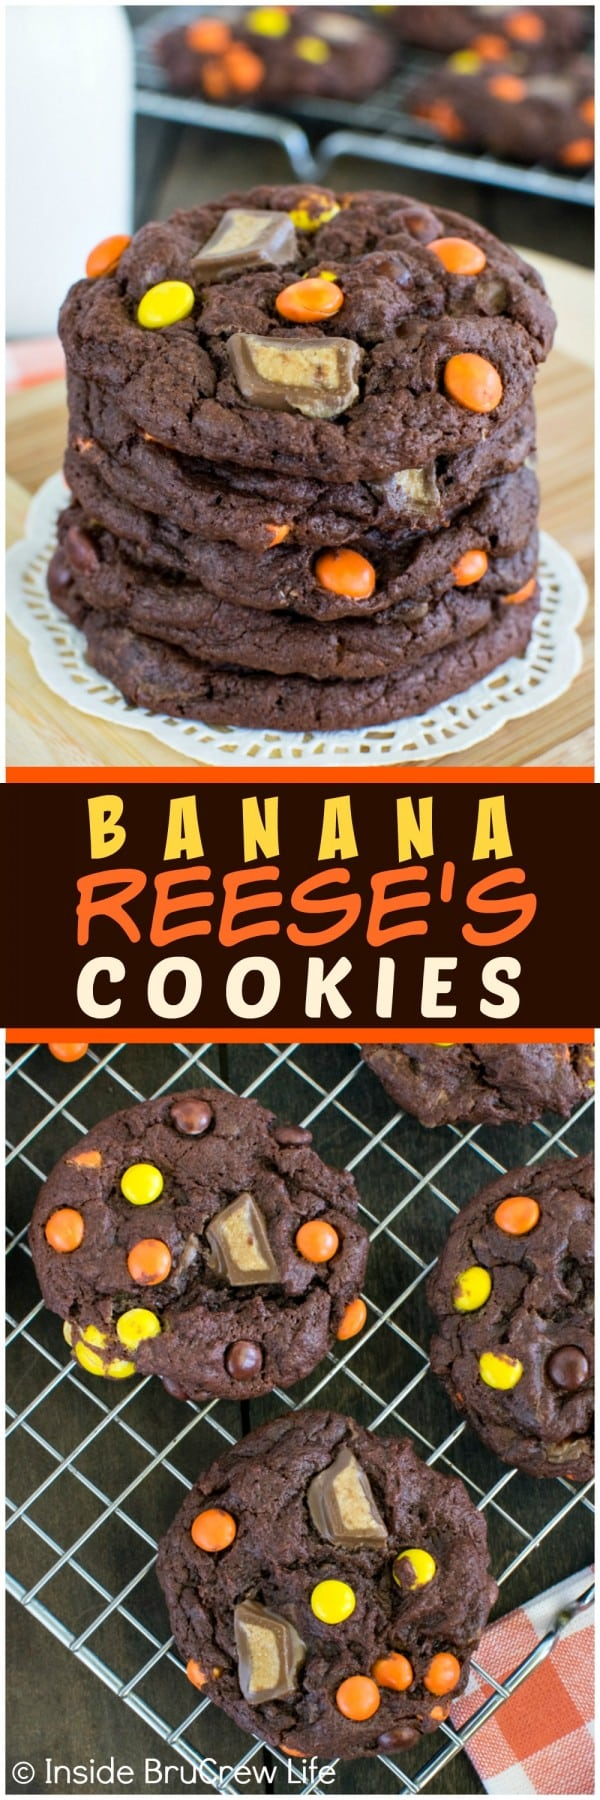 Banana Reese's Cookies - soft and chewy cookies loaded with 2 times the peanut butter candies are a must make! Awesome dessert recipe!